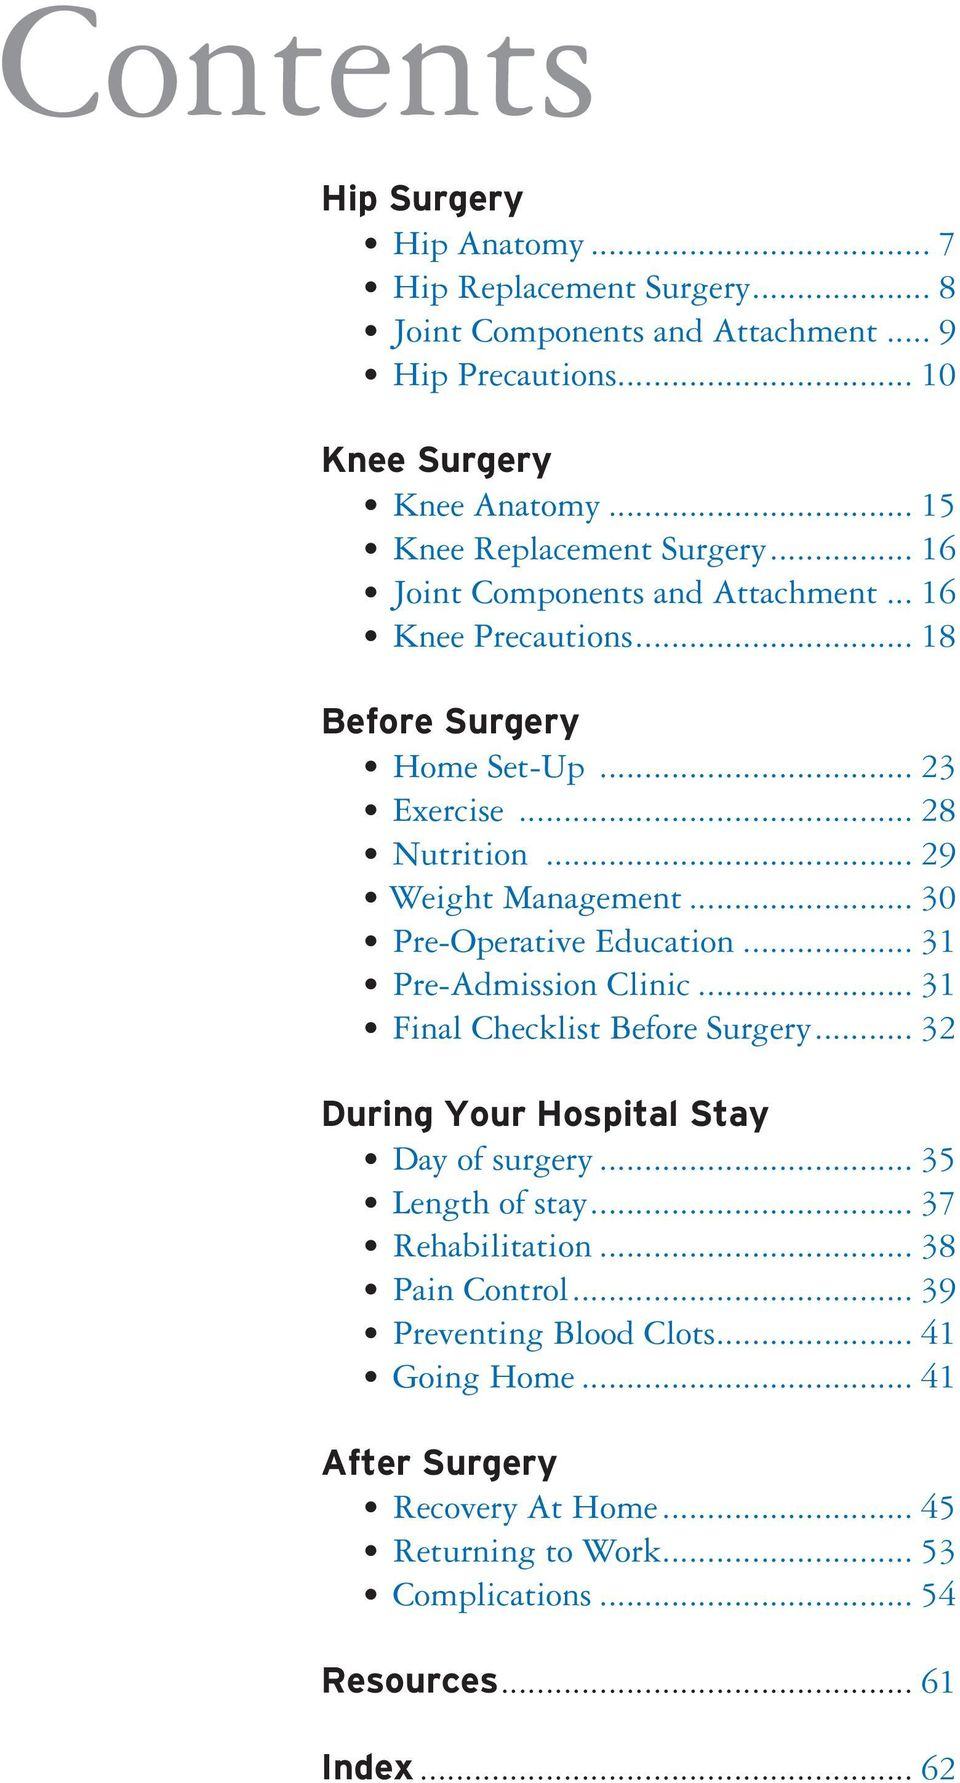 .. 29 Weight Management... 30 Pre-Operative Education... 31 Pre-Admission Clinic... 31 Final Checklist Before Surgery... 32 During Your Hospital Stay Day of surgery.